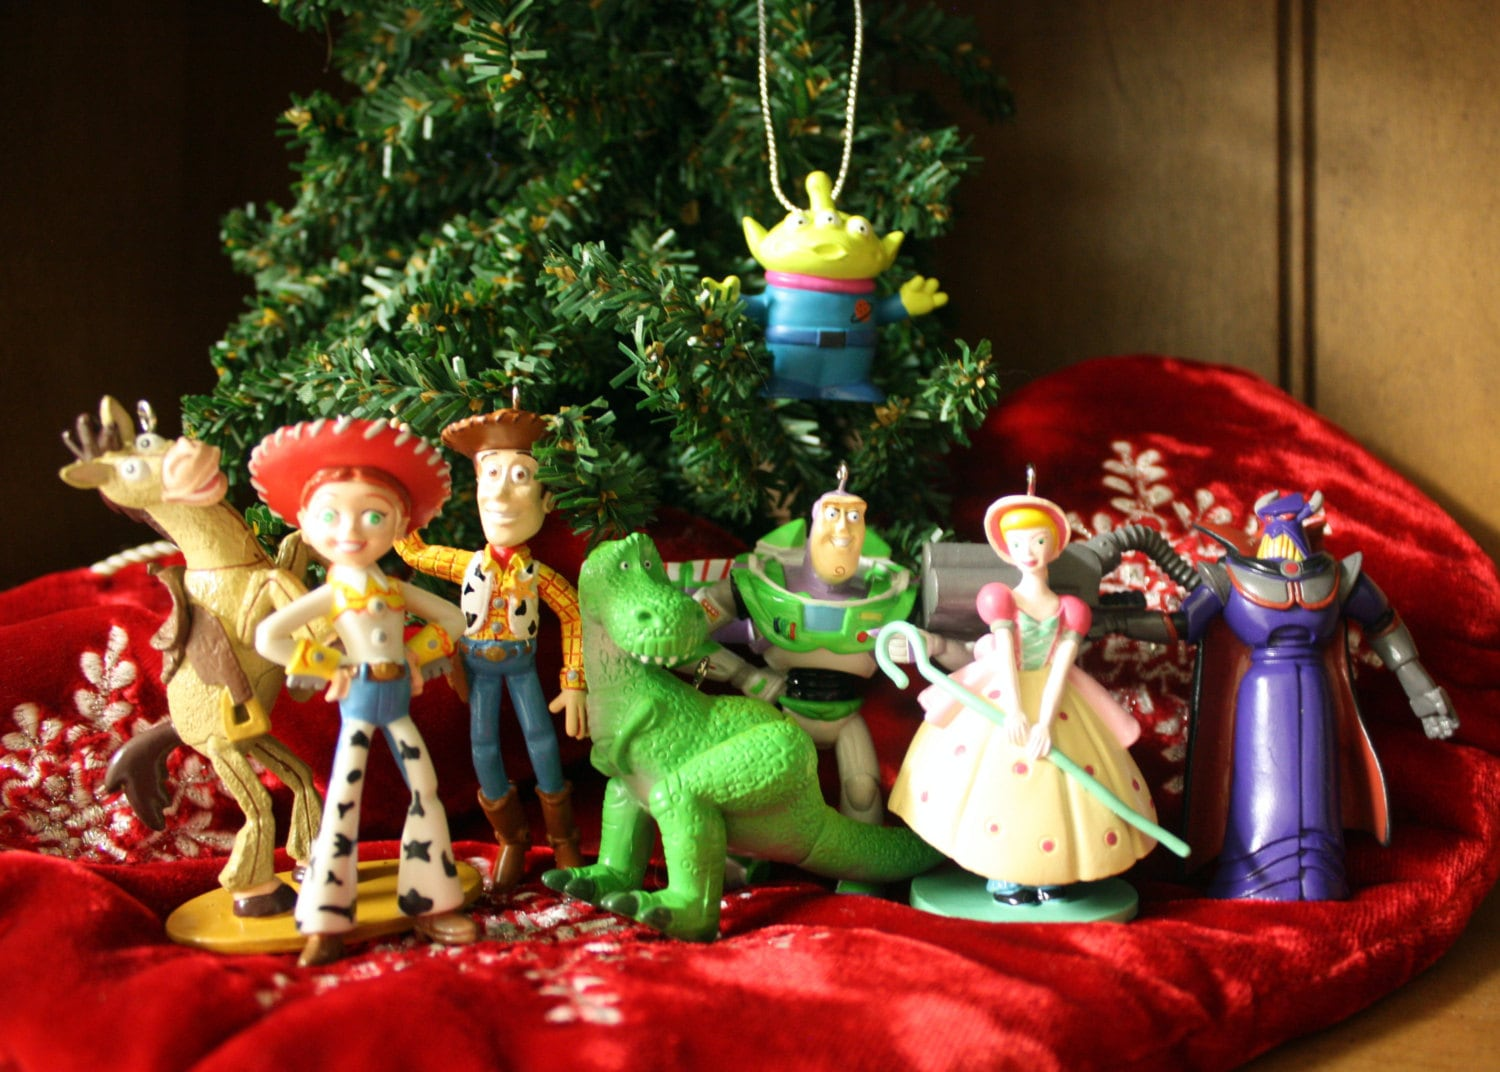 Christmas Toys Disney : Toy story disney christmas ornament set woody buzz jessie